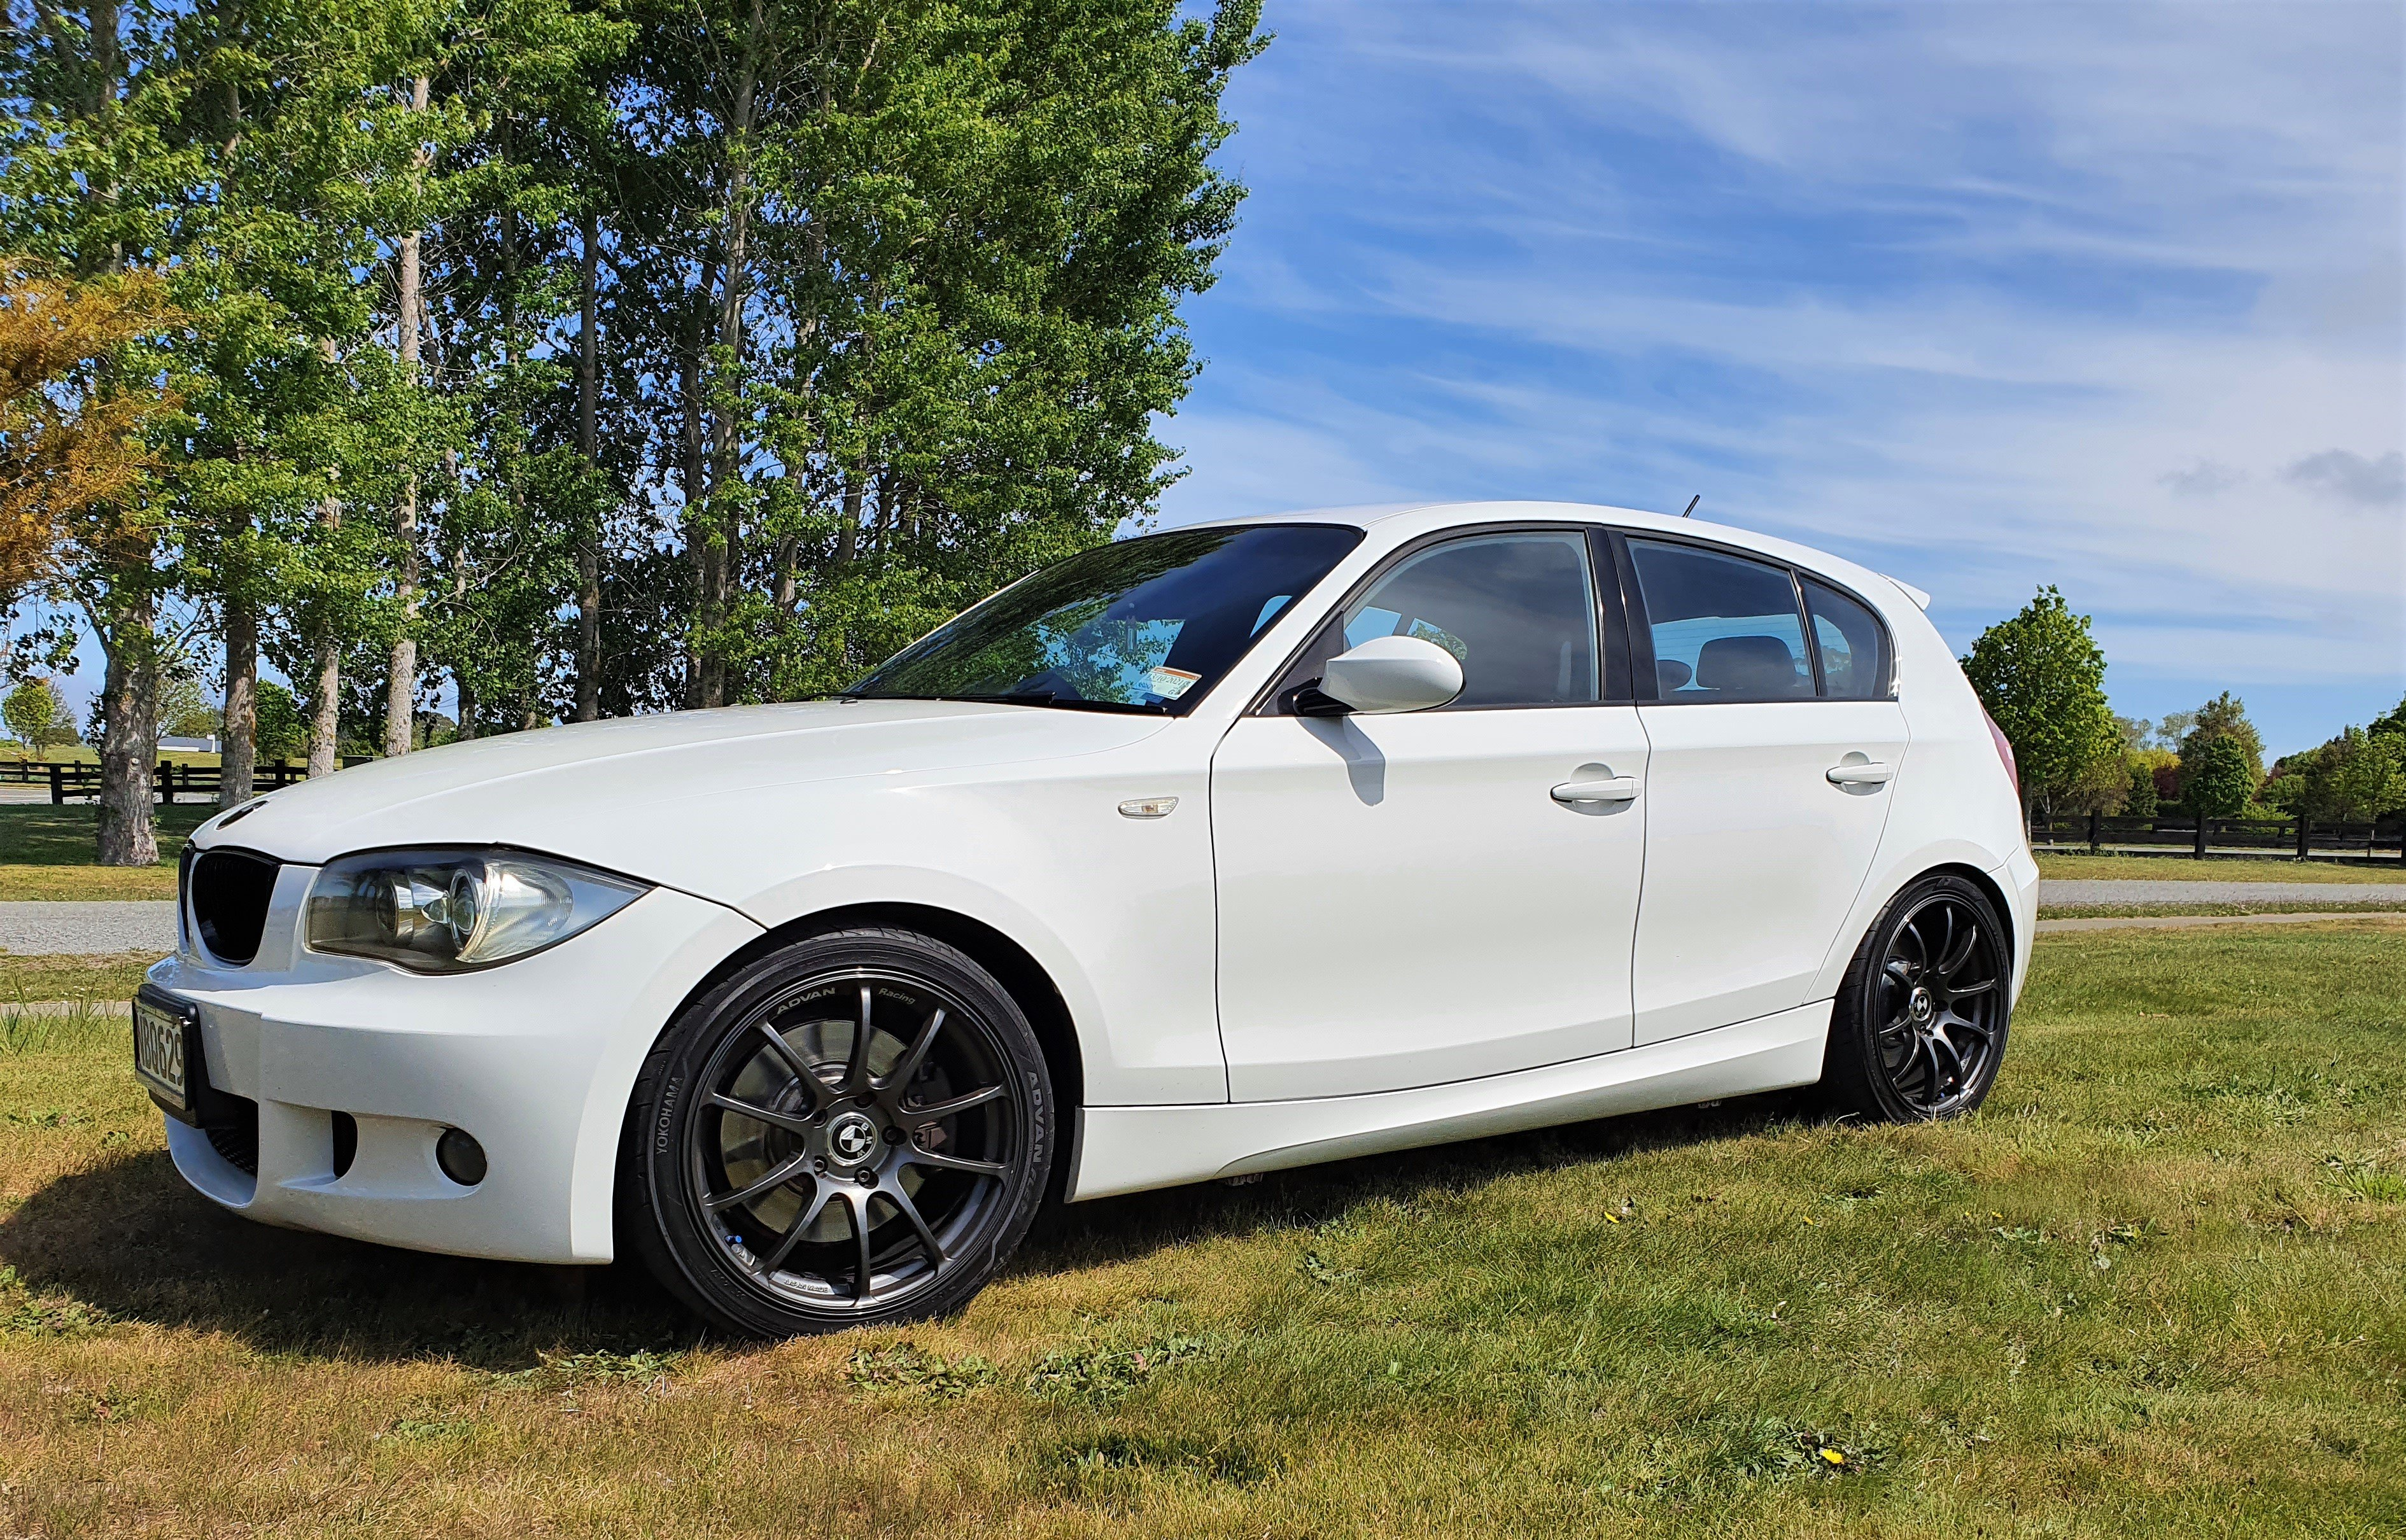 New To Me 130i 6 Speed New Member Introductions Bimmersport Co Nz